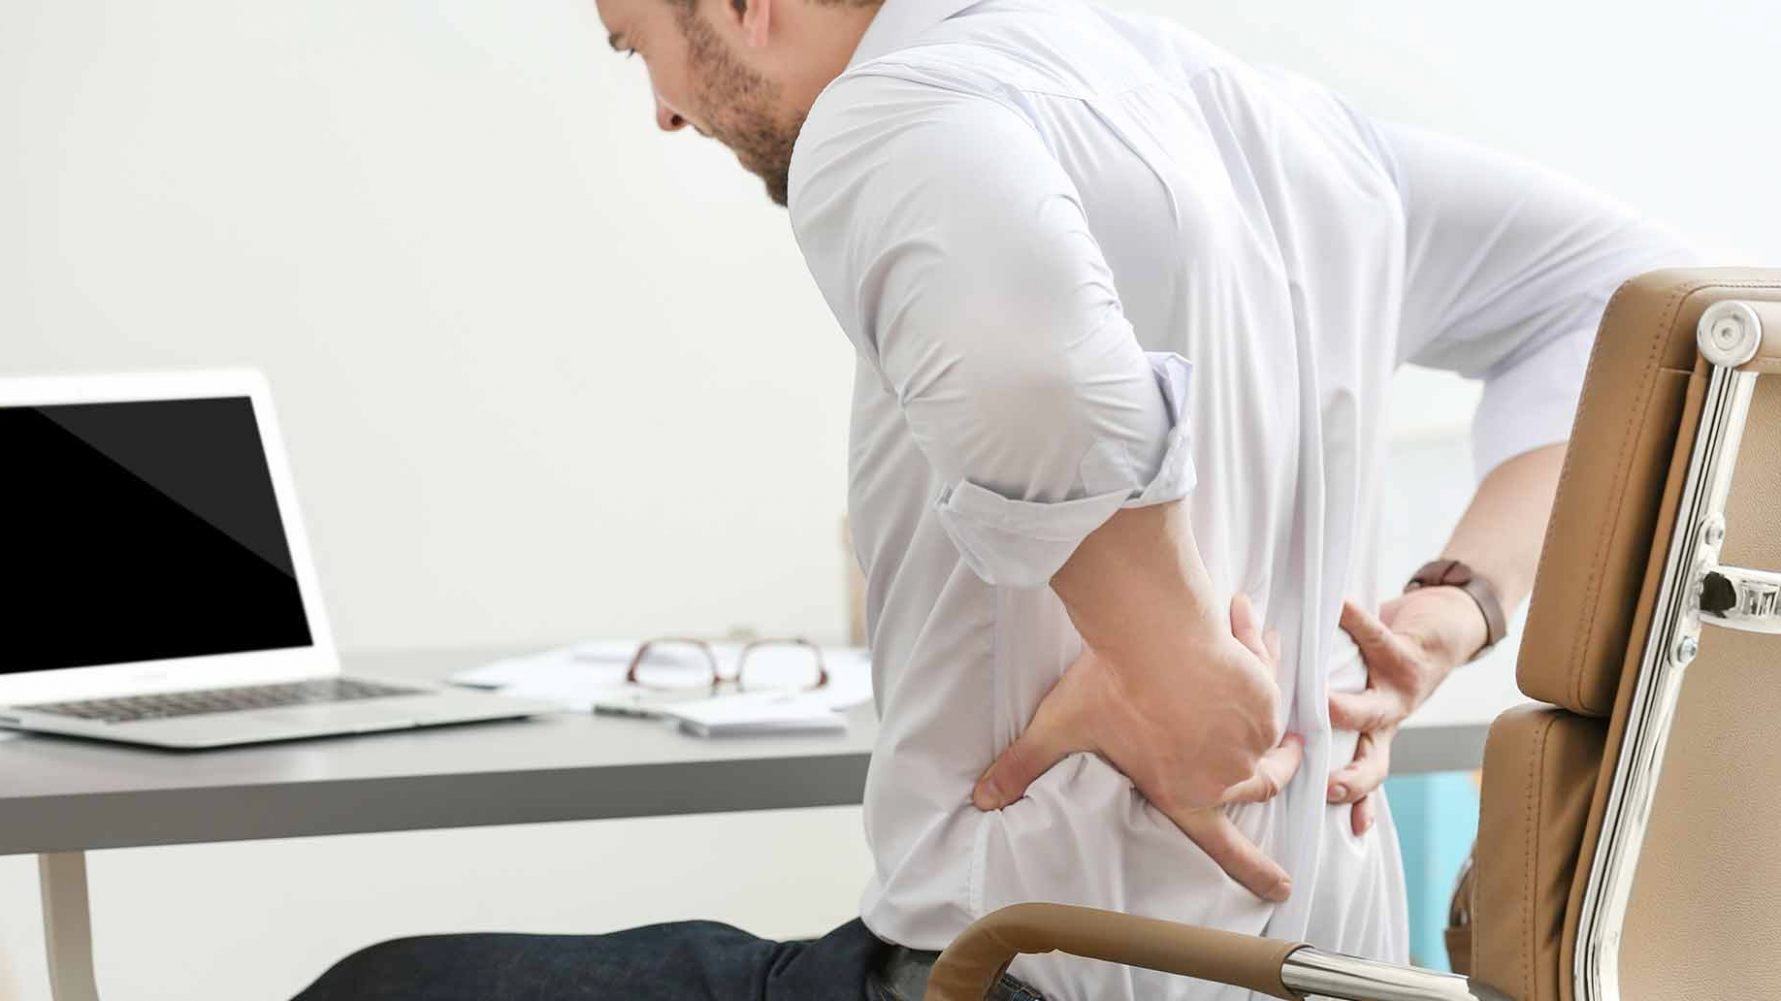 lower-back-pain-when-rising-from-chair-6-sitting-time-office-computer-use-standing-breaks-back-pain-stiffness-natural-remedies-1781-x-1001